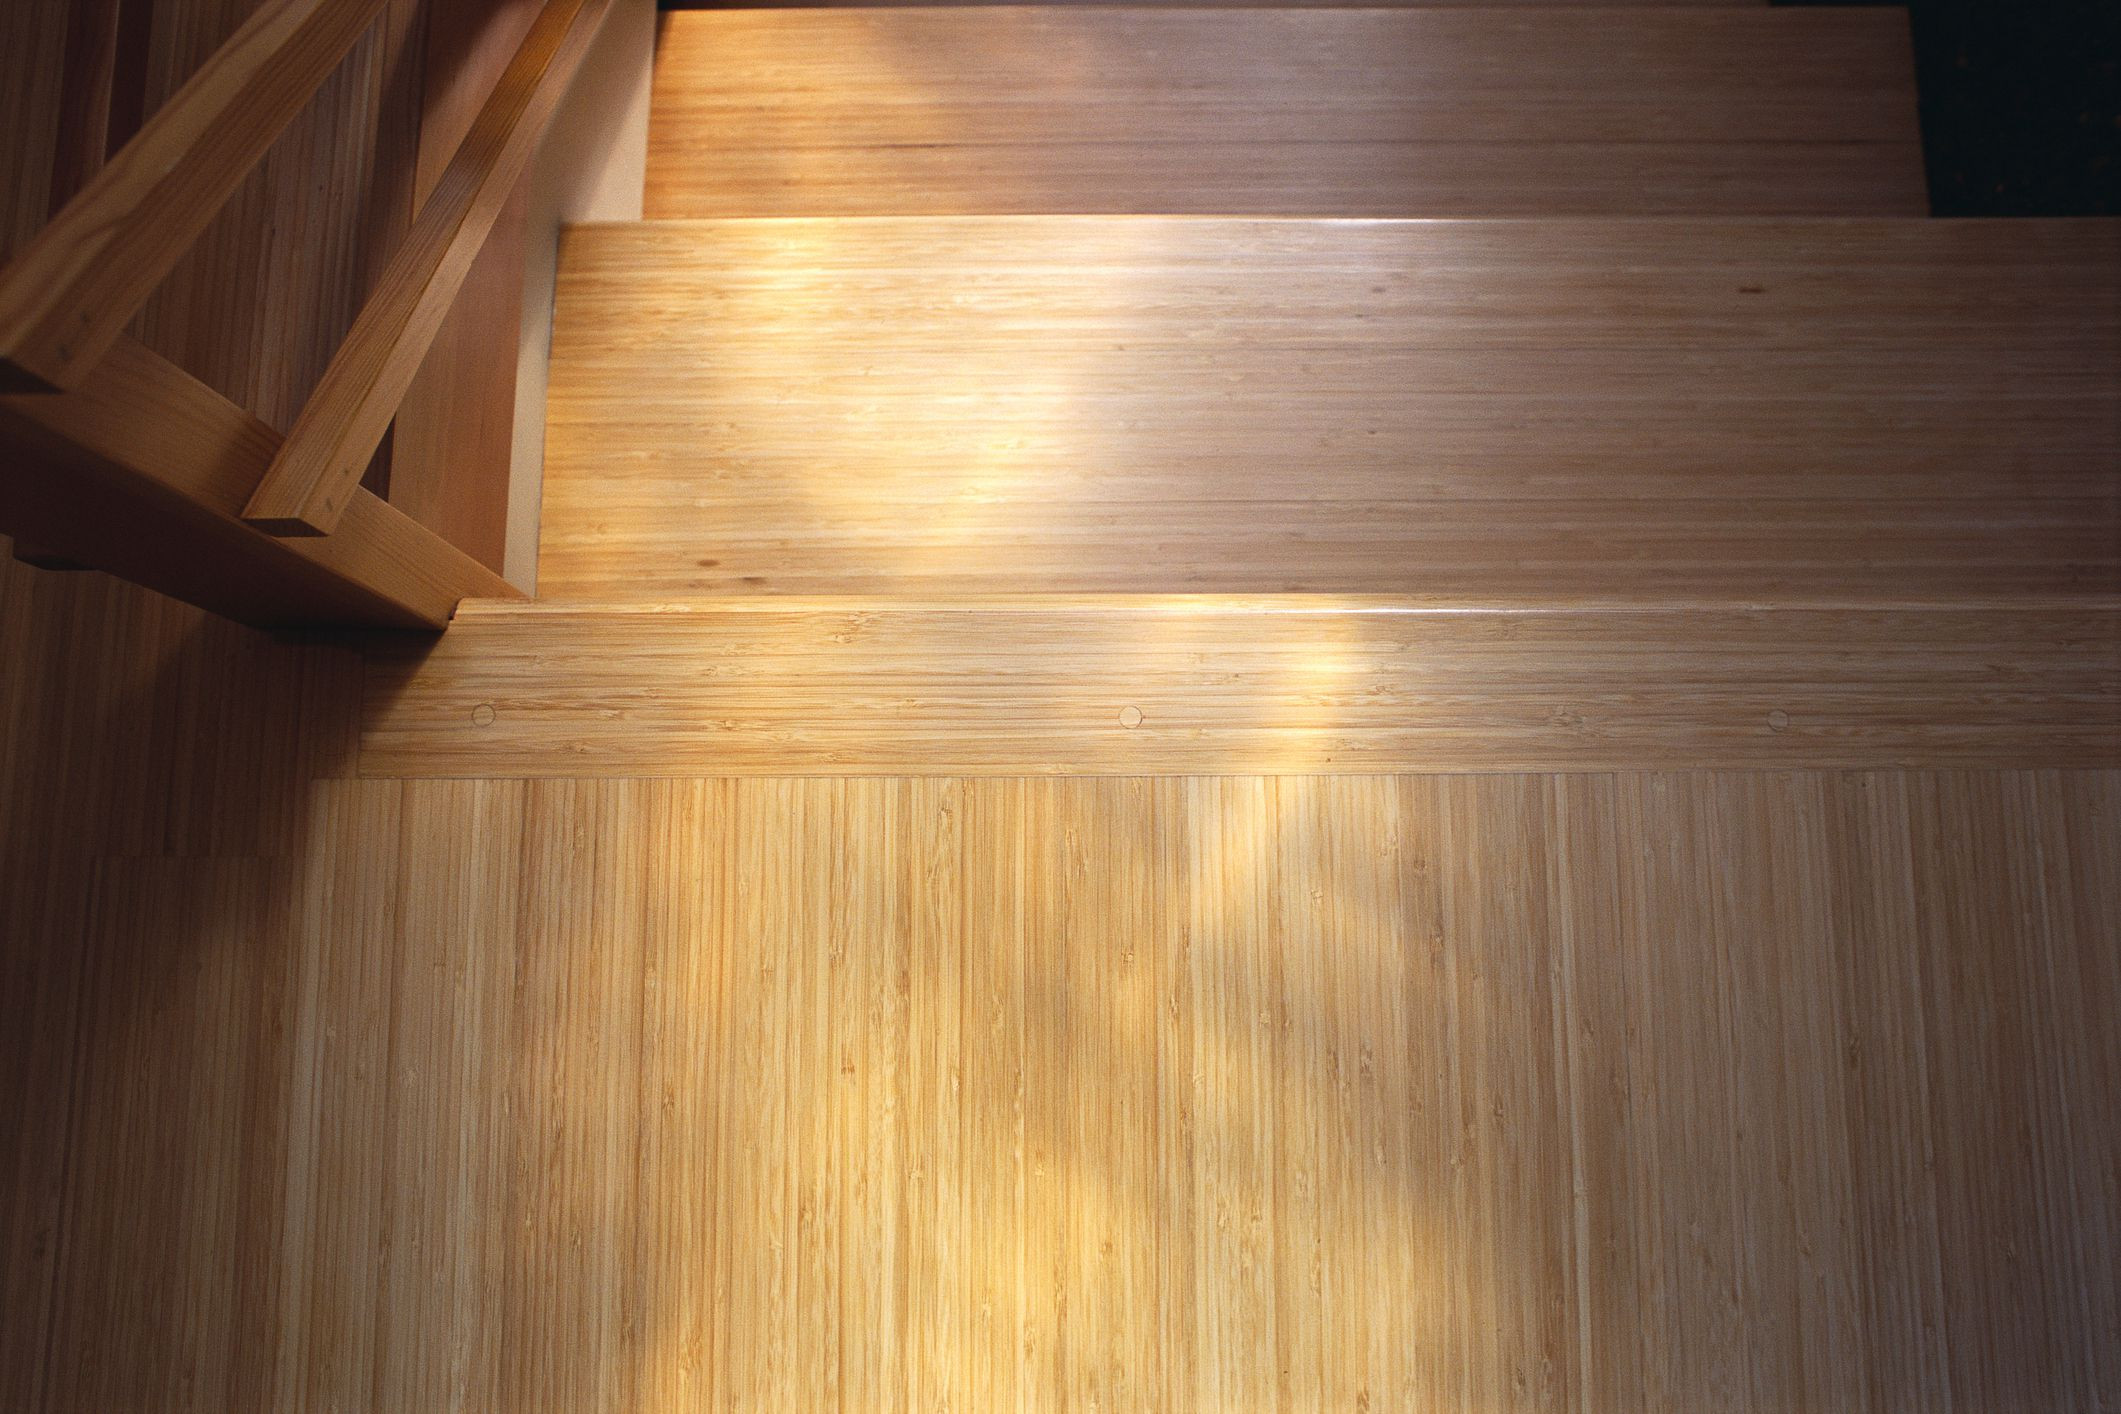 glue down hardwood floor problems of bamboo flooring issues and problems with gettyimages 588174422 59ffa192e258f800370dd247